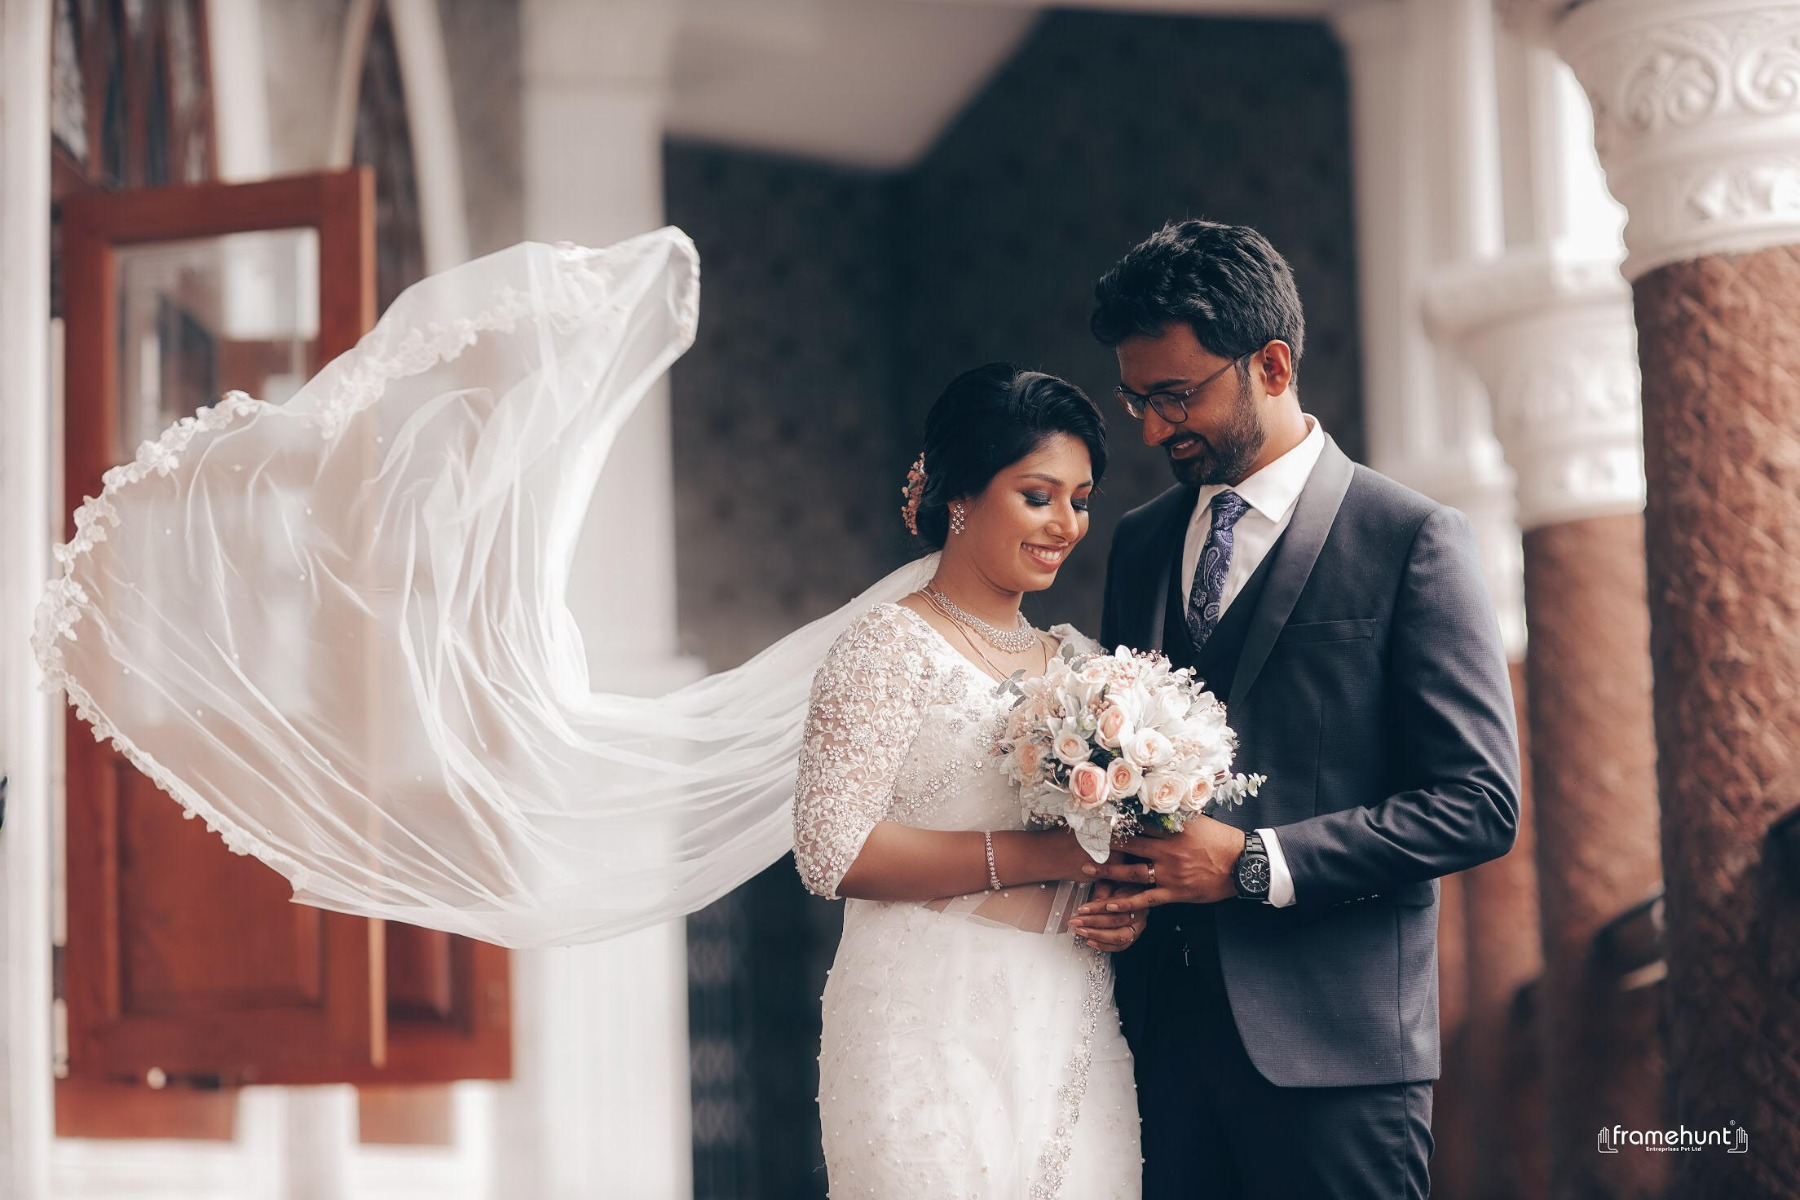 Beautiful Signature  Saree from our collection  Carried by pretty bride Sara on her wedding